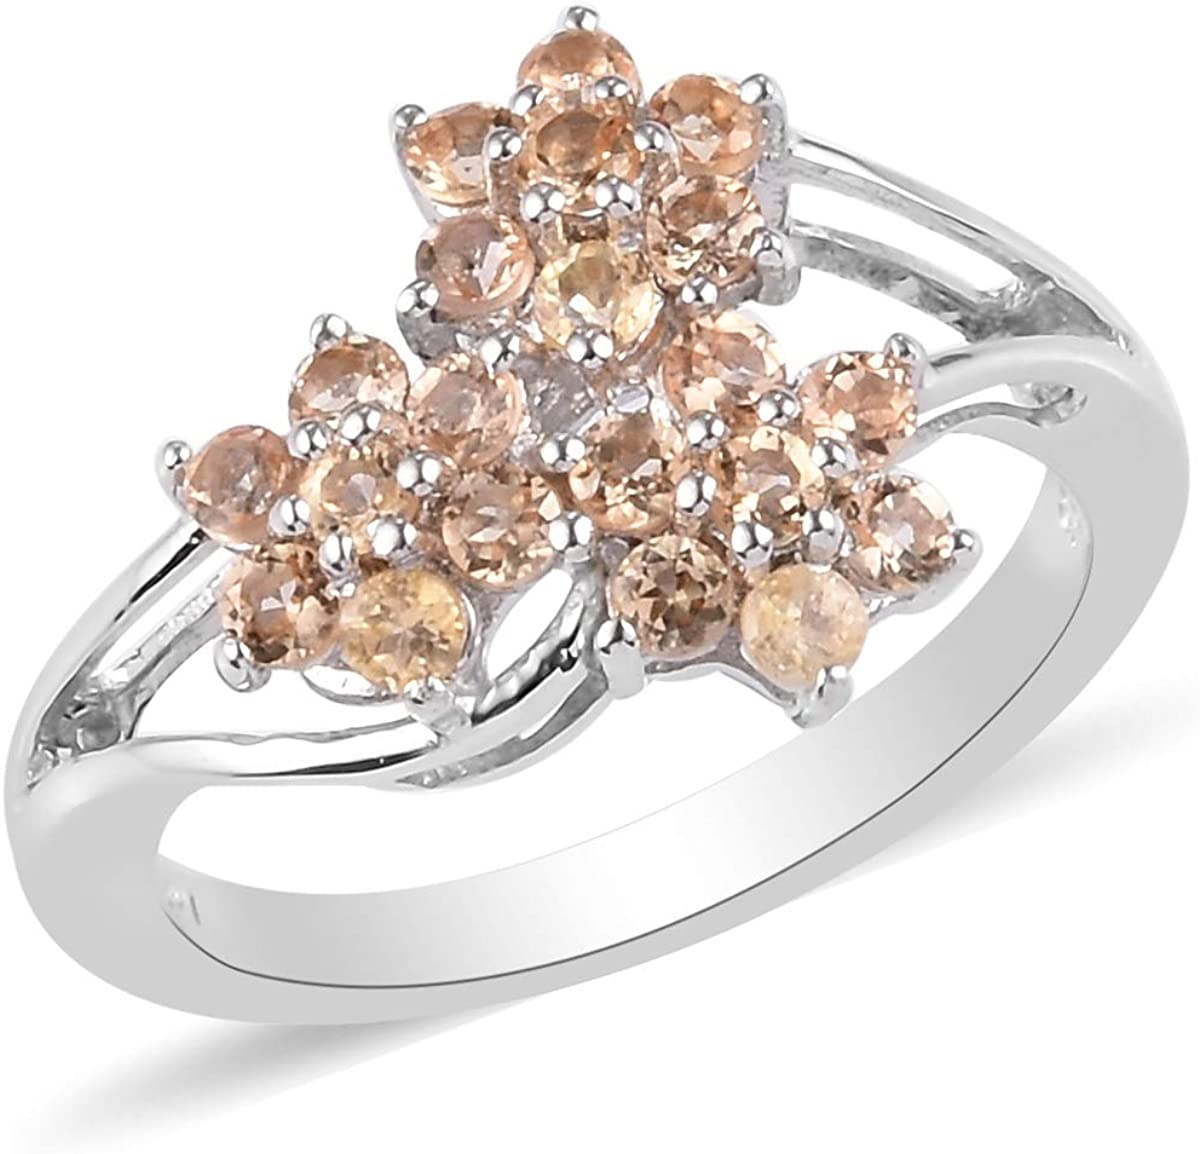 925 Sterling Silver Vermeil Rose Gold Platinum Plated Round Imperial Topaz Flower Ring Wedding Anniversary Engagement Bridal Jewelry for Women Ct 0.8